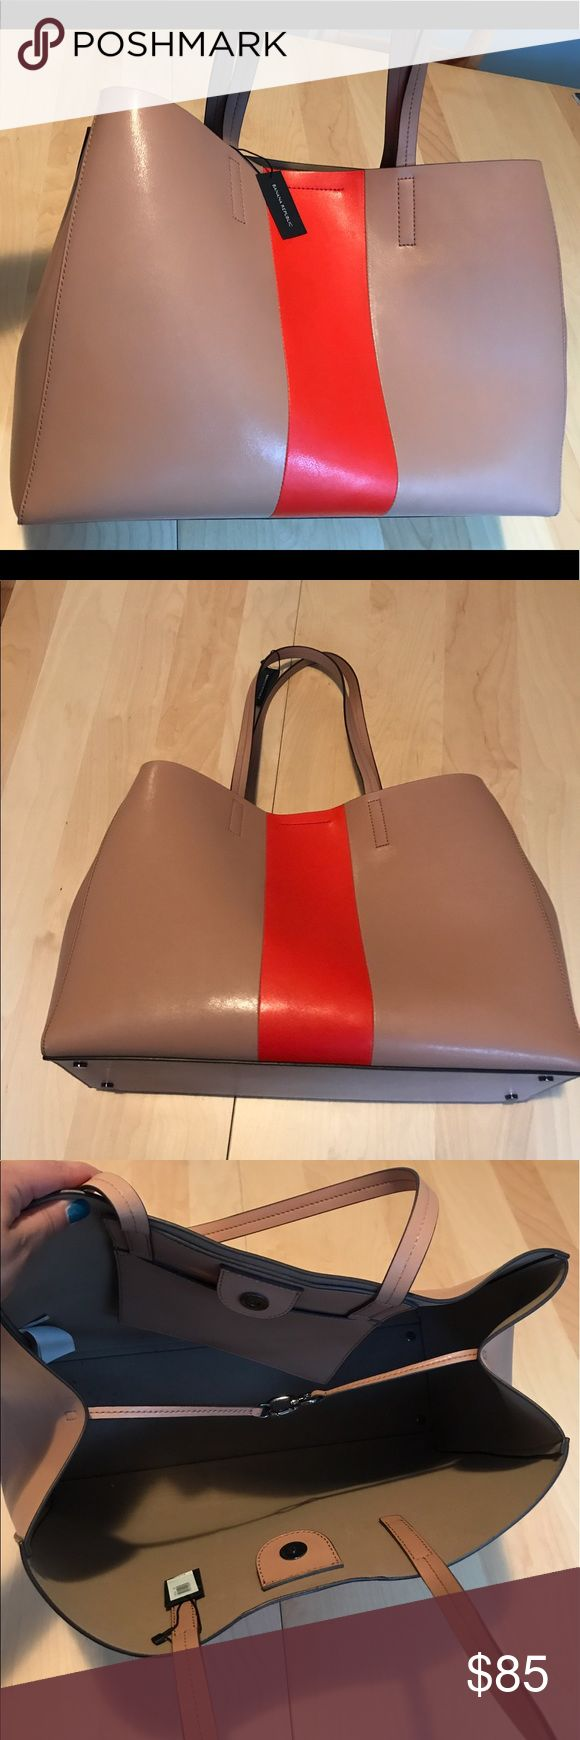 "Banana Republic leather tote, new with tags! Very large leather tote bag from Banana Republic, new with tags! Beige leather with an orange stripe for a pop of color. Will easily hold a 15"" laptop. Banana Republic Bags Totes"